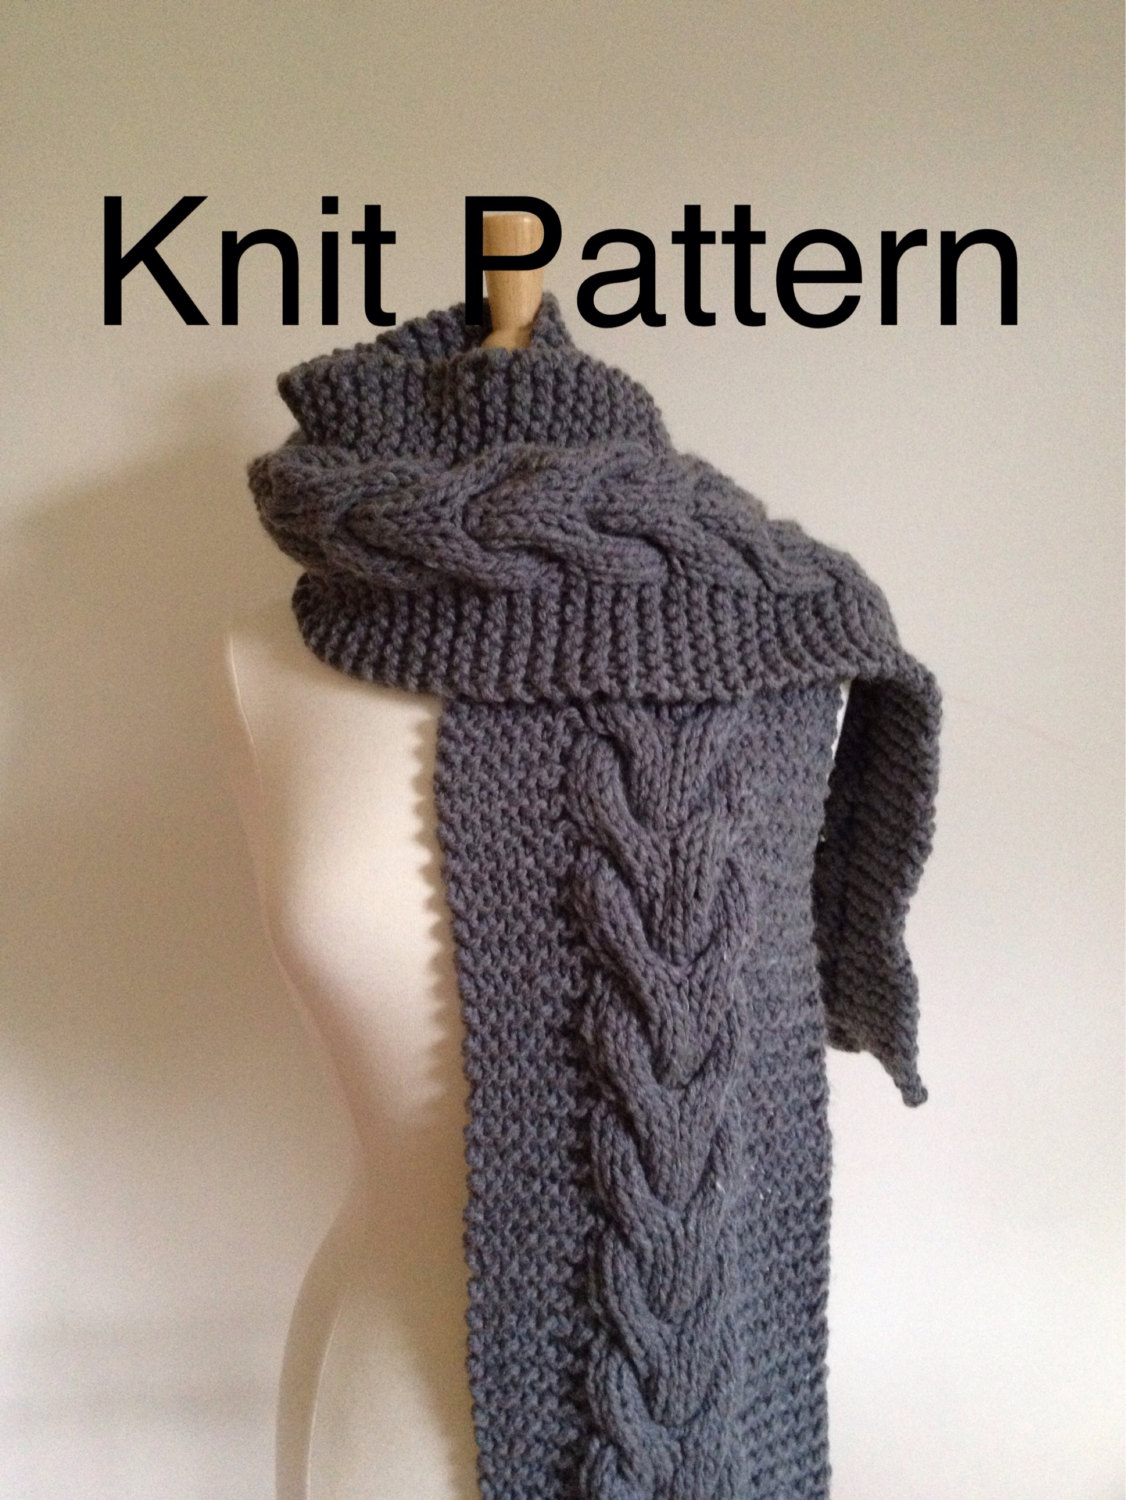 Knit Pattern Scarf Pattern- Hand Knit Scarf Pattern With A Horseshoe ...